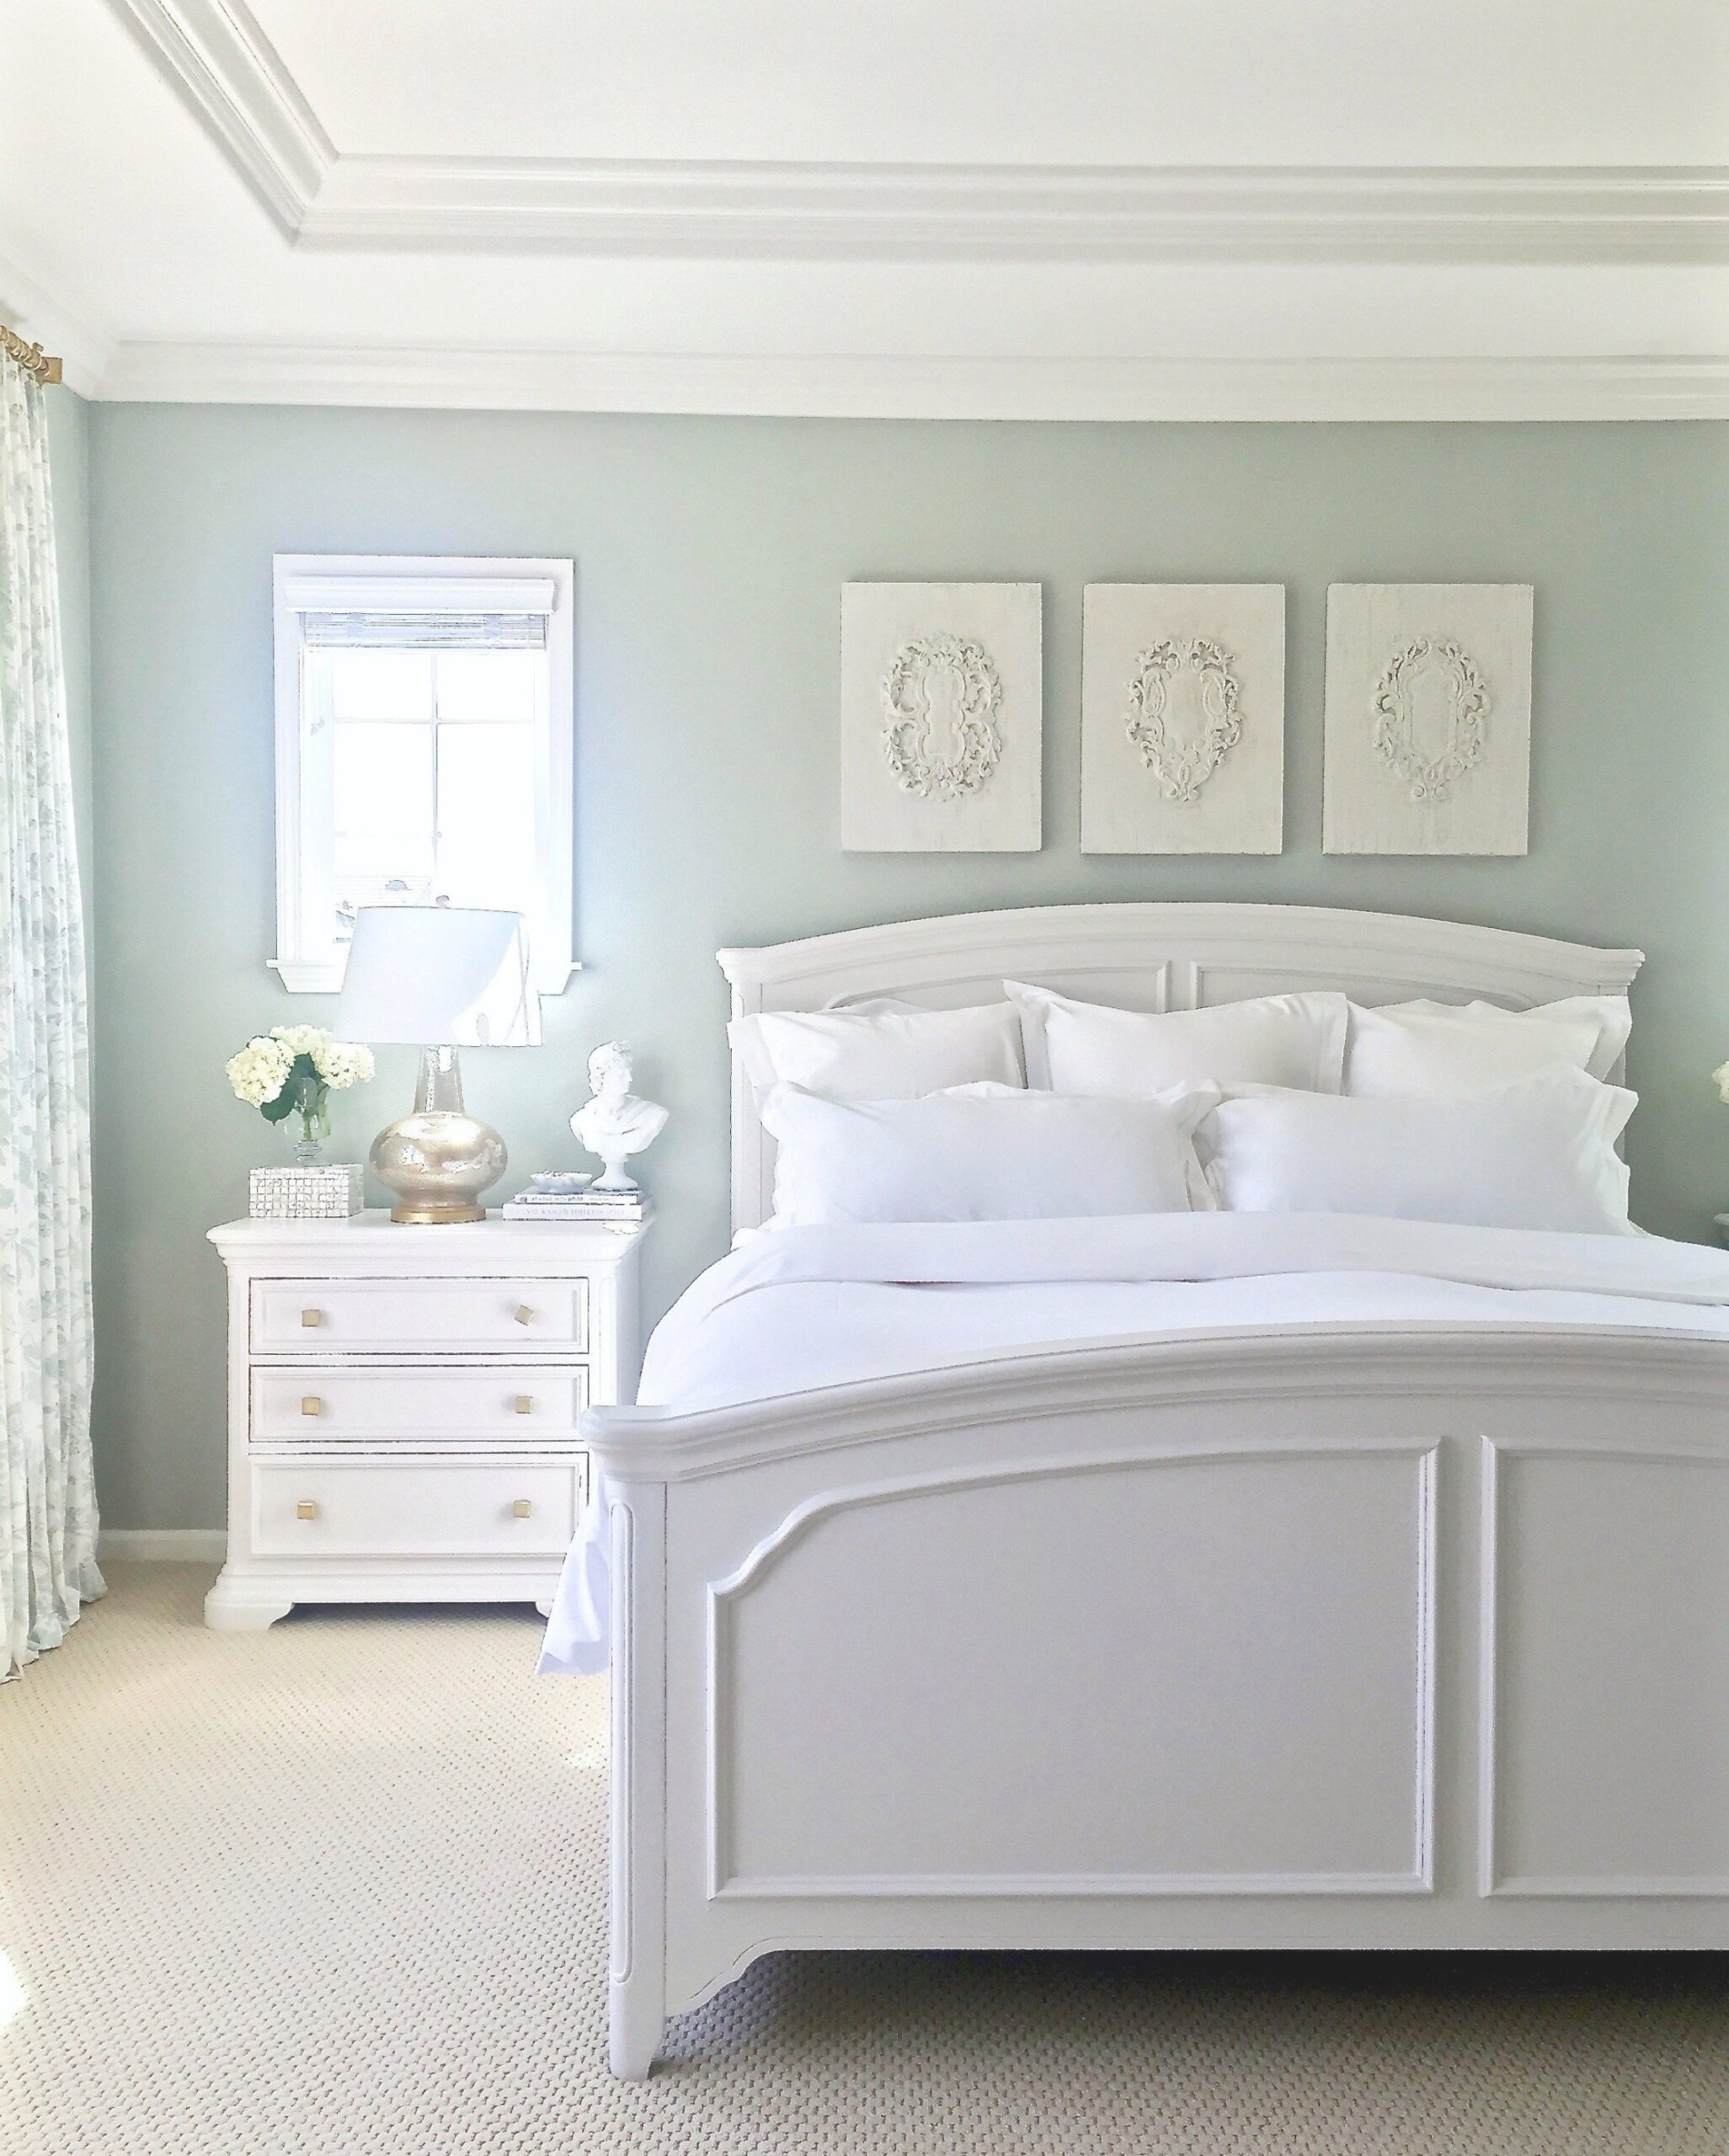 My New Summer White Bedding From Boll & Branch | White throughout What Color Should I Paint My Bedroom